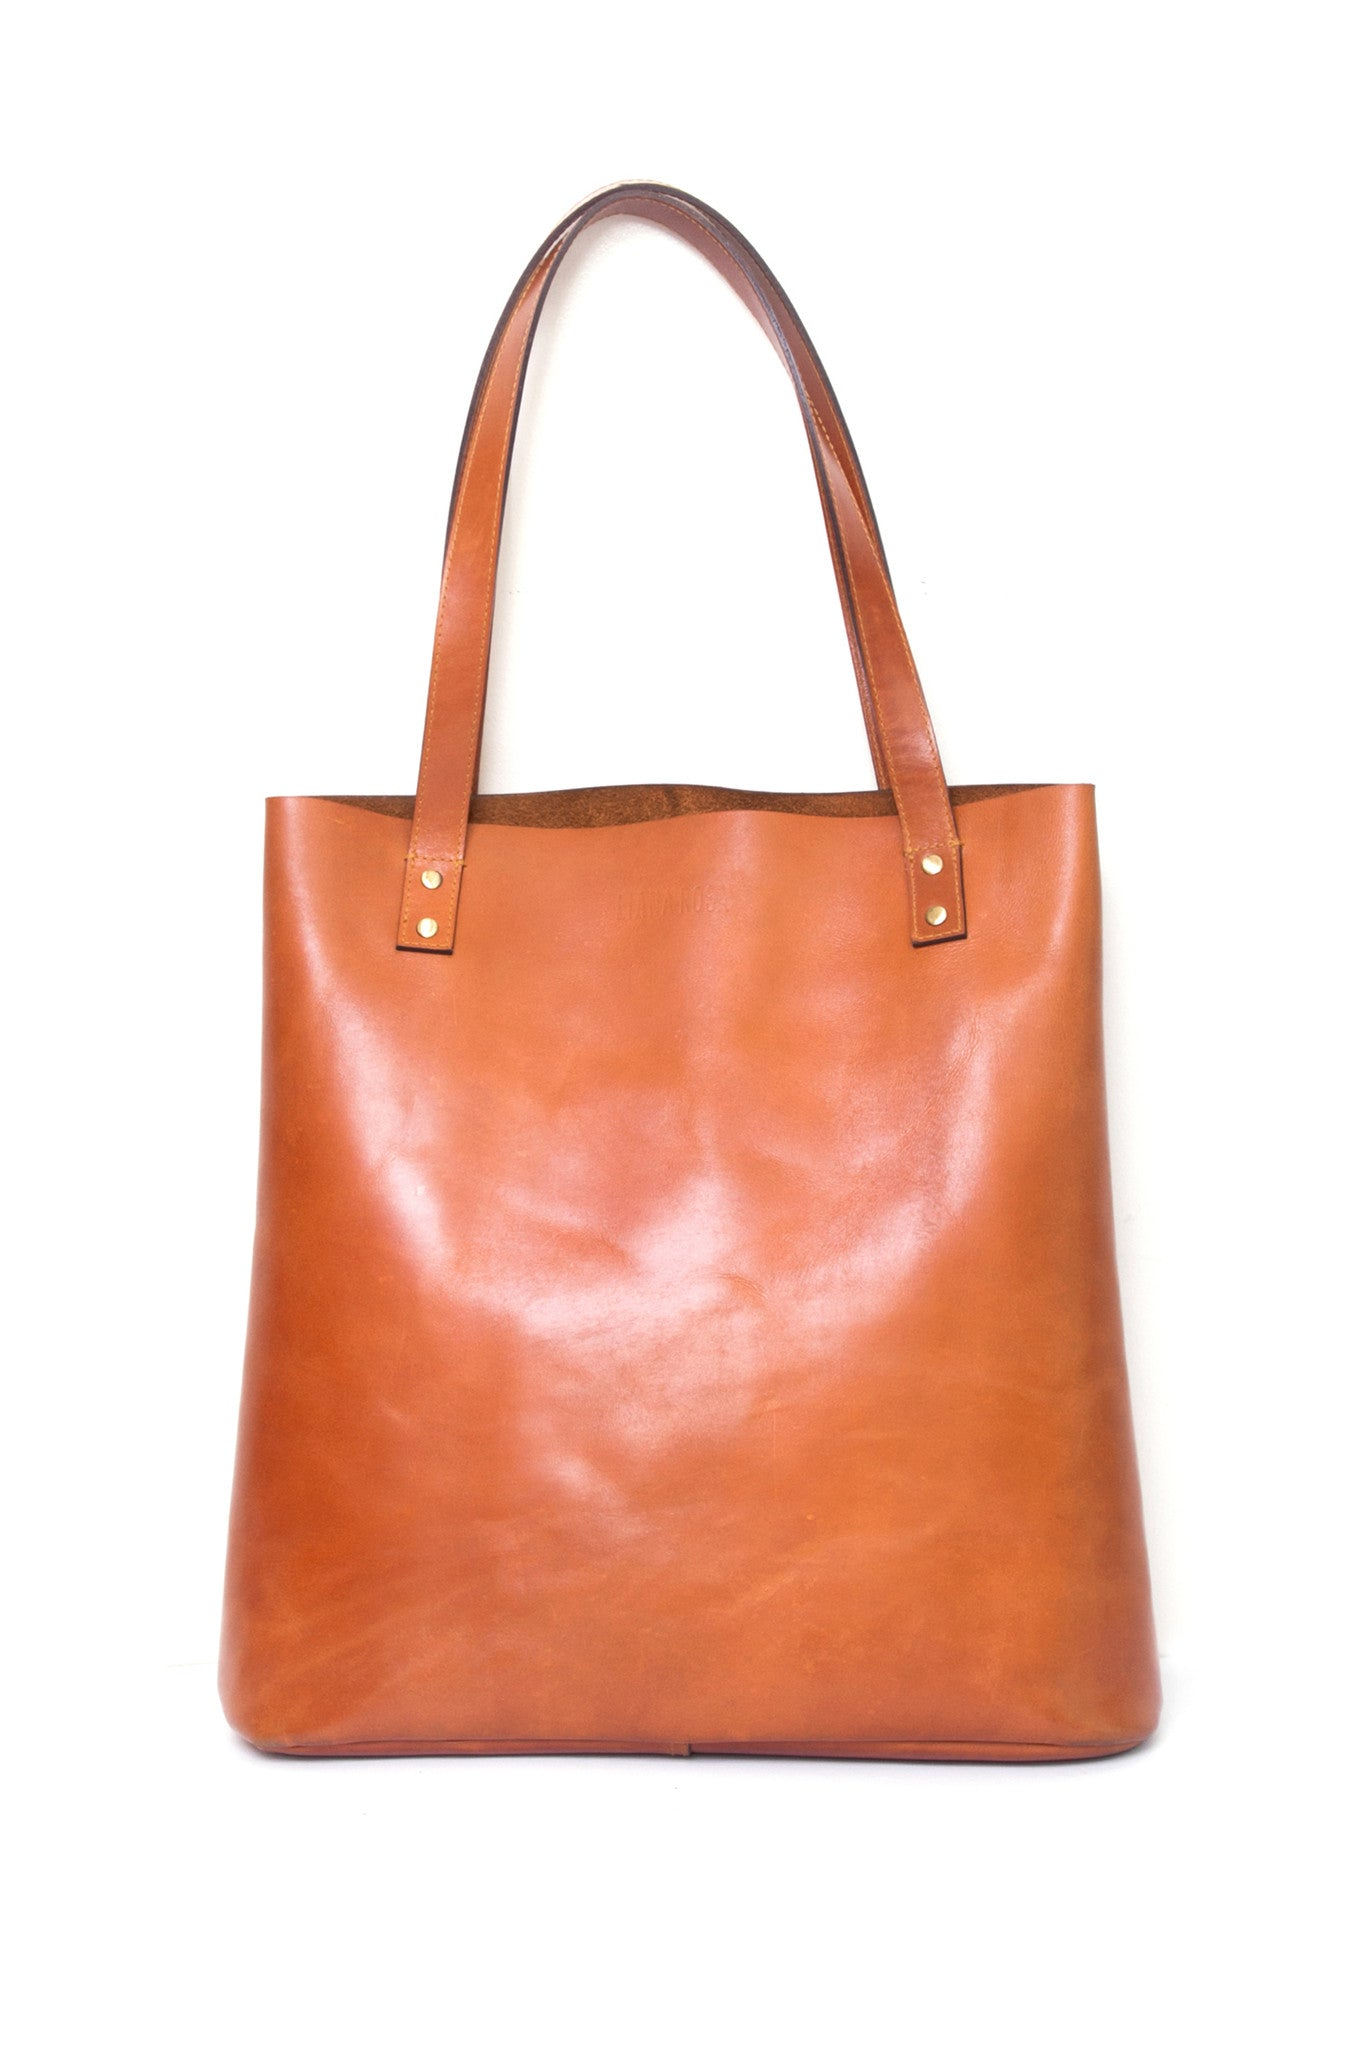 Henry Cognac Brown Leather Tote Bag by Liana Rosa